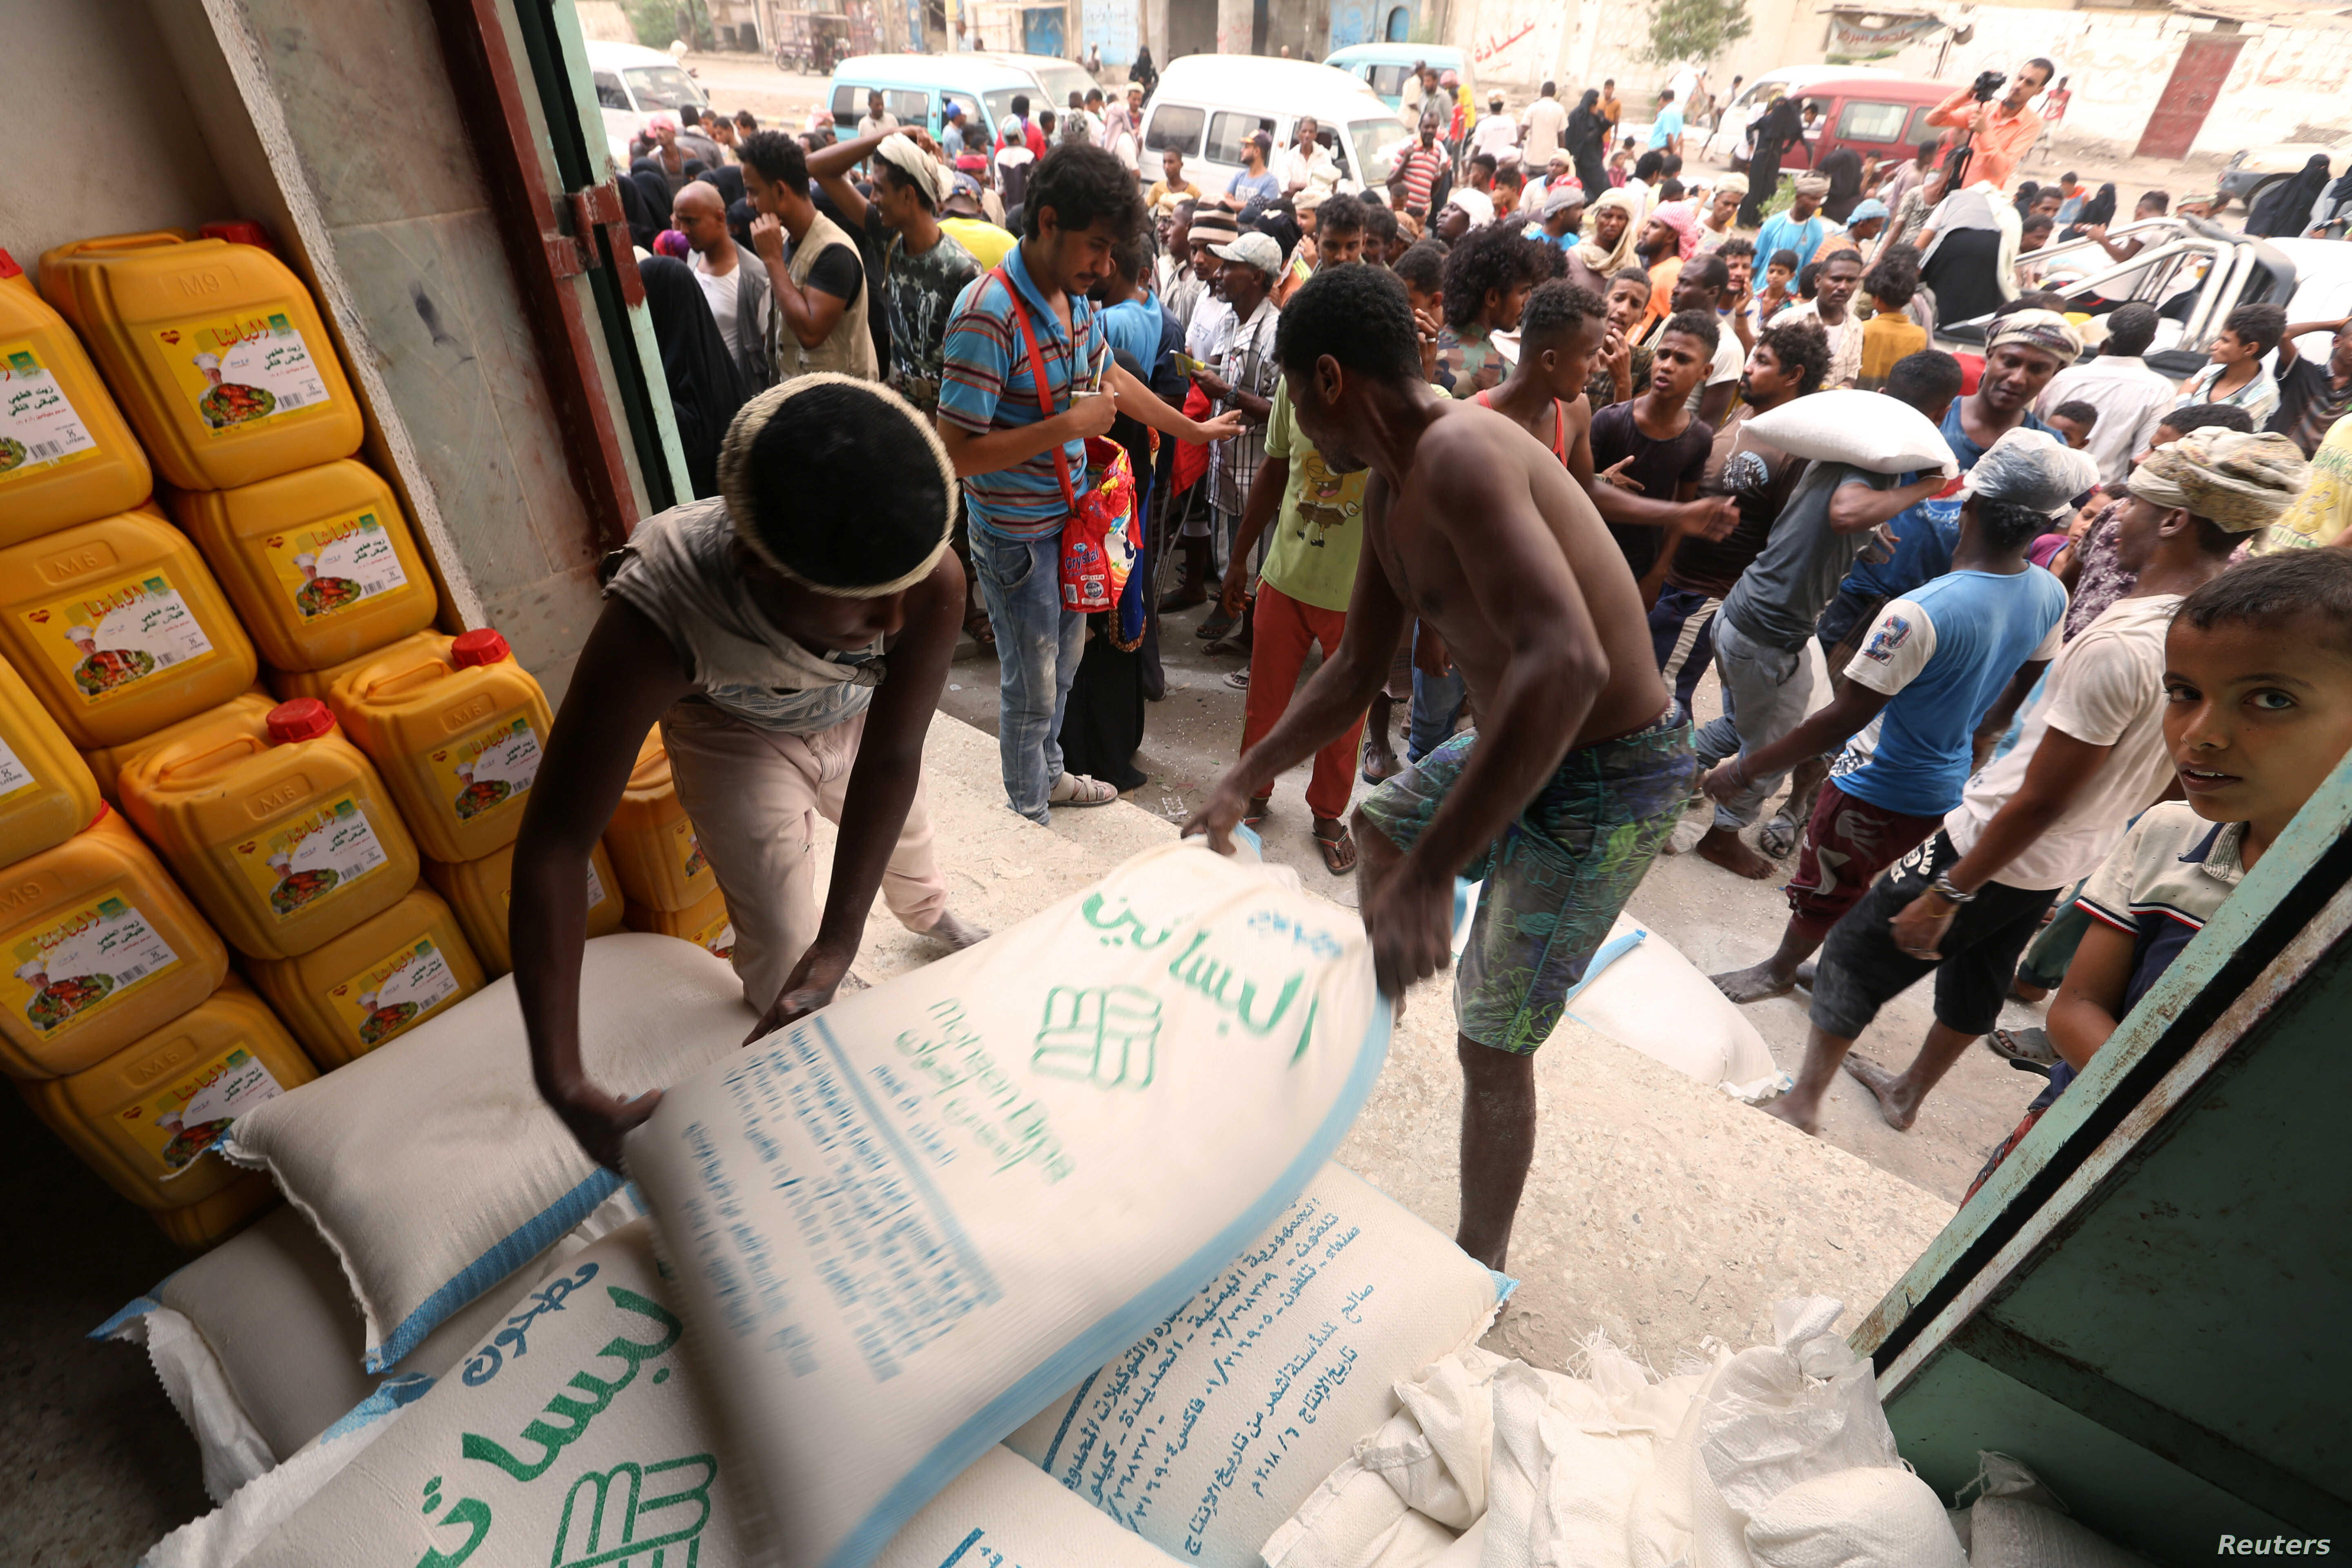 Workers unload sacks of wheat flour as people gather outside an aid distribution center in the Red Sea port city of Hodeidah, Yemen, June 14, 2018.